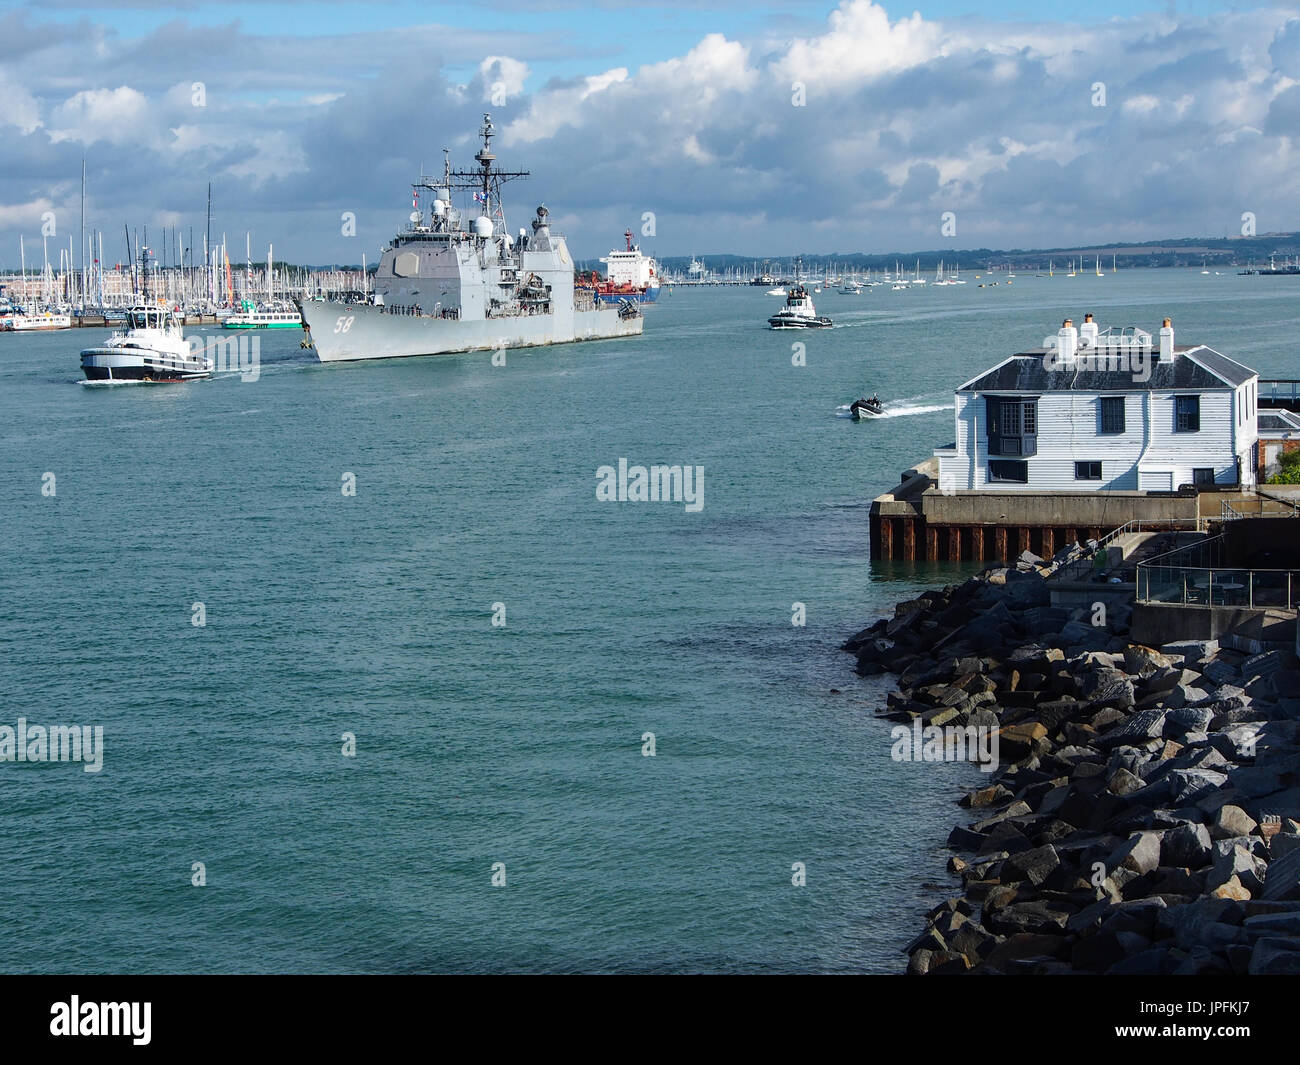 Portsmouth, Hampshire, UK. 01st Aug, 2017. The USS Philippine Sea, CG-58, a Flight II Ticonderoga-class guided missile cruiser, leaves Portsmouth Harbour after a week long visit along with other ships involved in Operation Inherent Resolve, the Global Coalition's fight against ISIS. Other members of the task group included USS Donald Cook, Norwegian ship HNoMS Helge Insgstad and USS George H W Bush a Nimitz class, nuclear powered aircraft carrier. Credit: simon evans/Alamy Live News - Stock Image